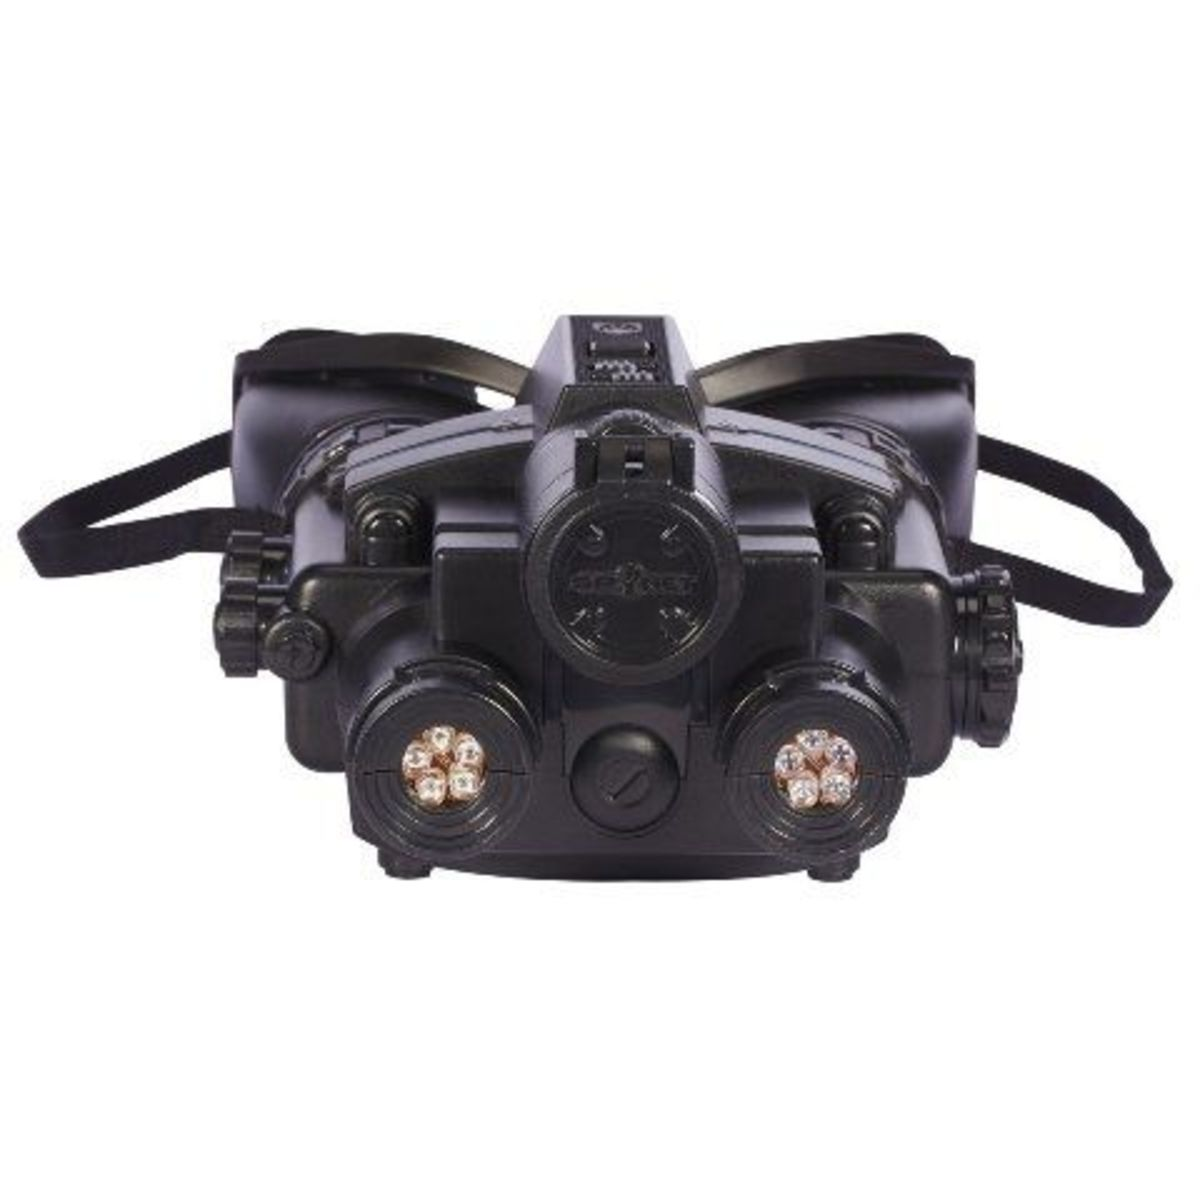 Spy Net Night Vision Infrared Stealth Binoculars: front view